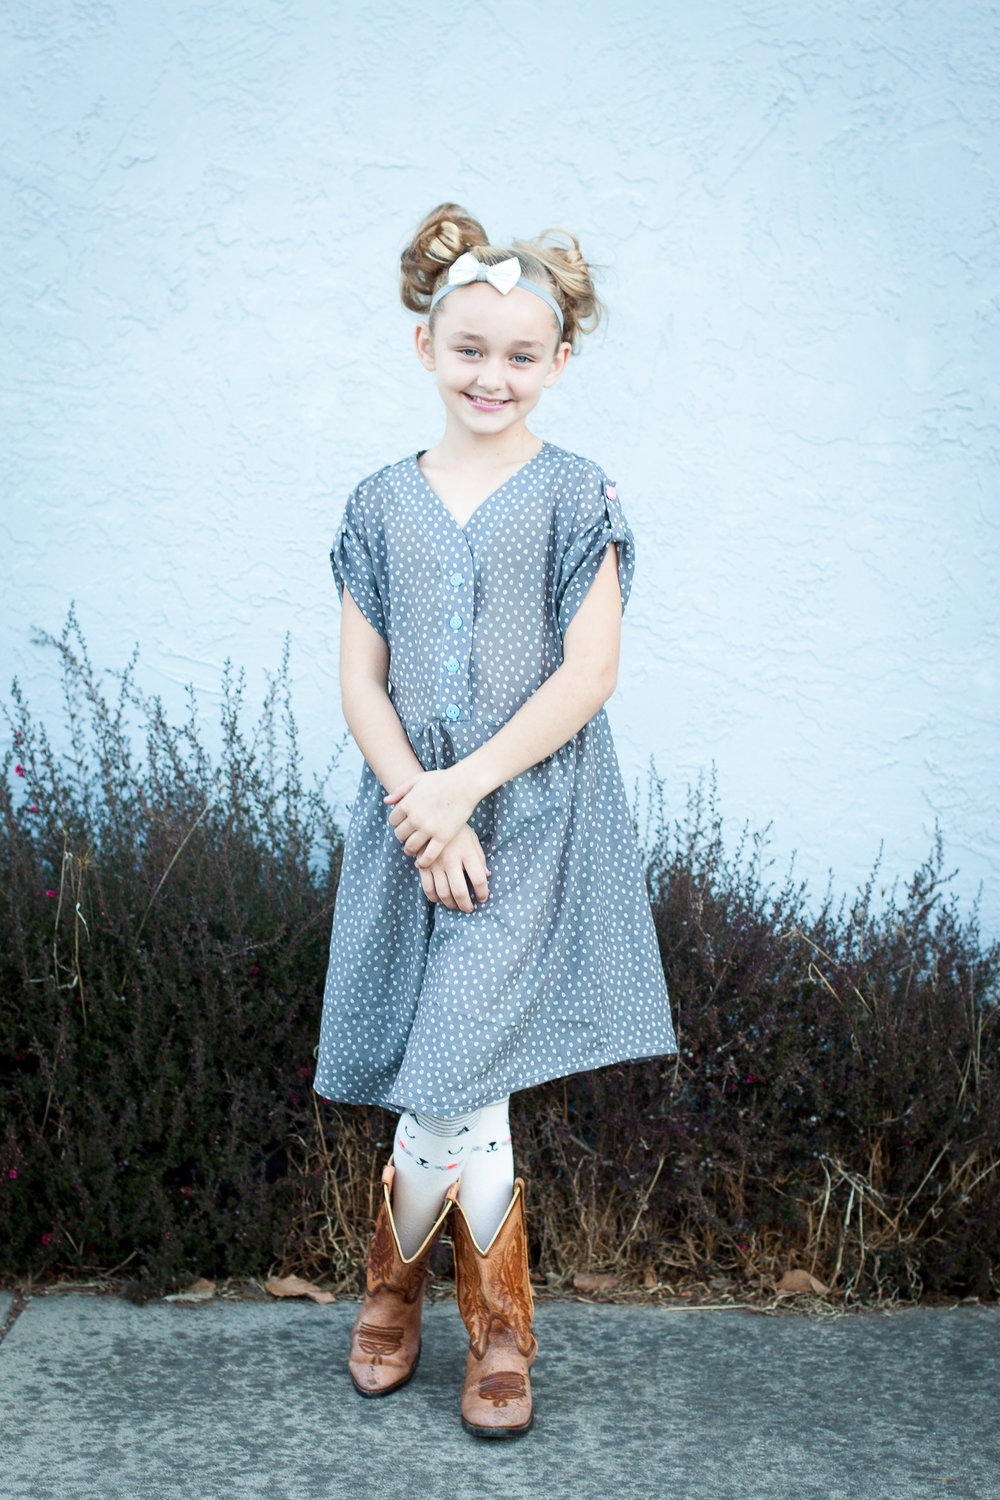 kidsfringedress-1.jpg